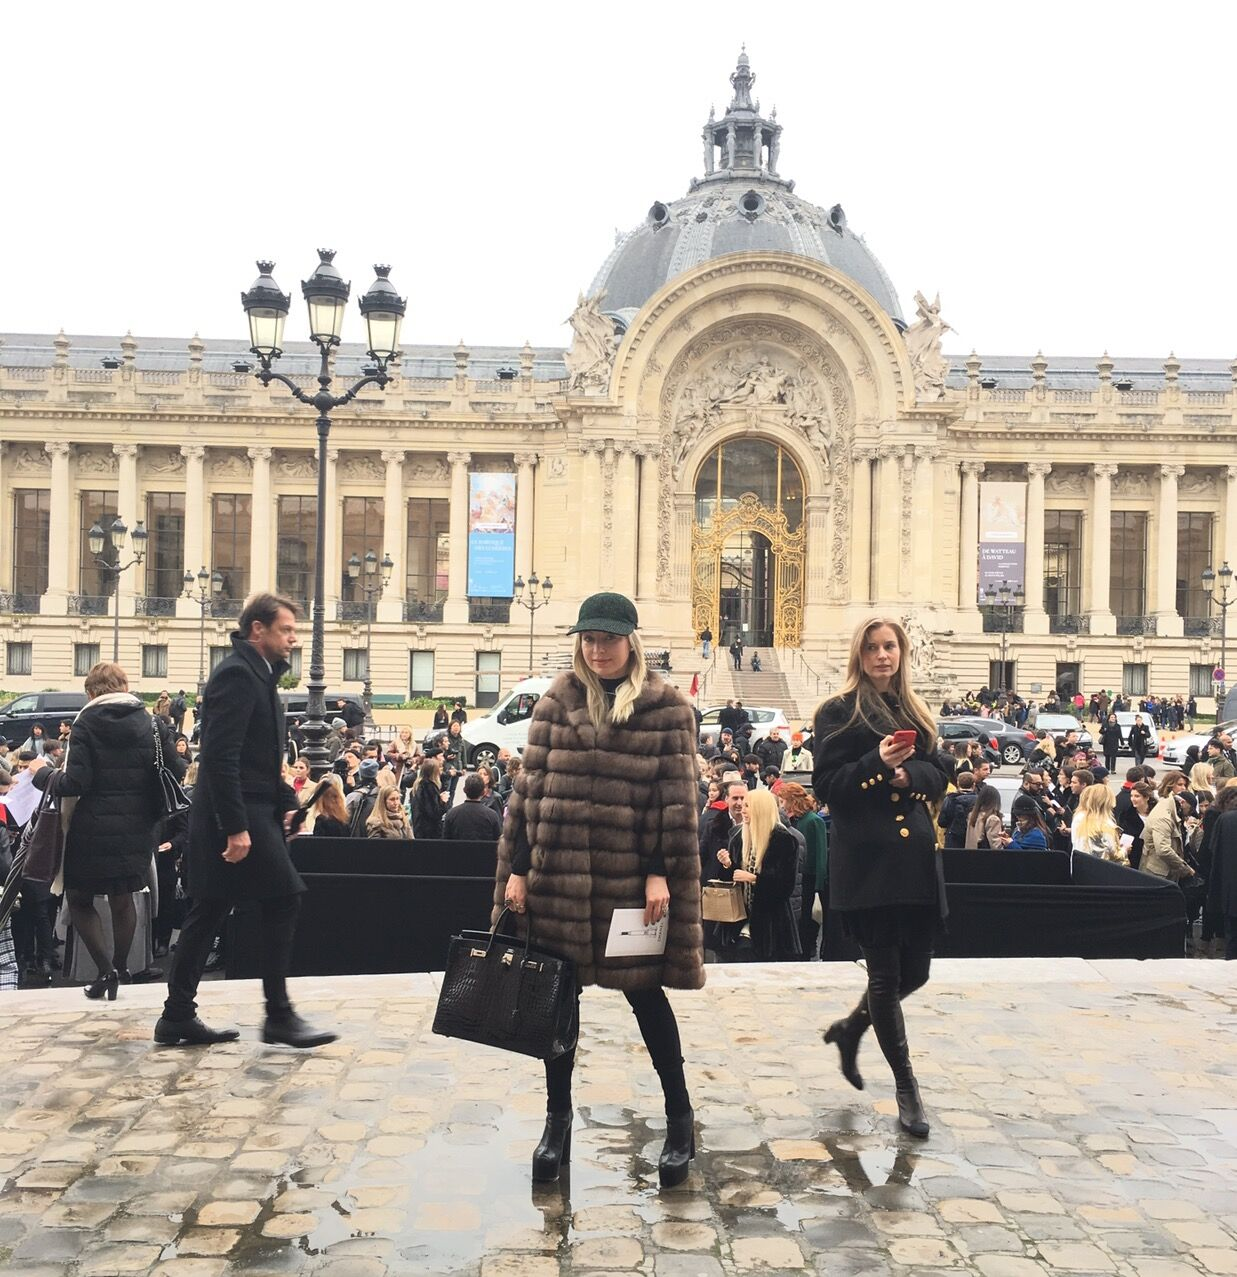 At the Chanel show